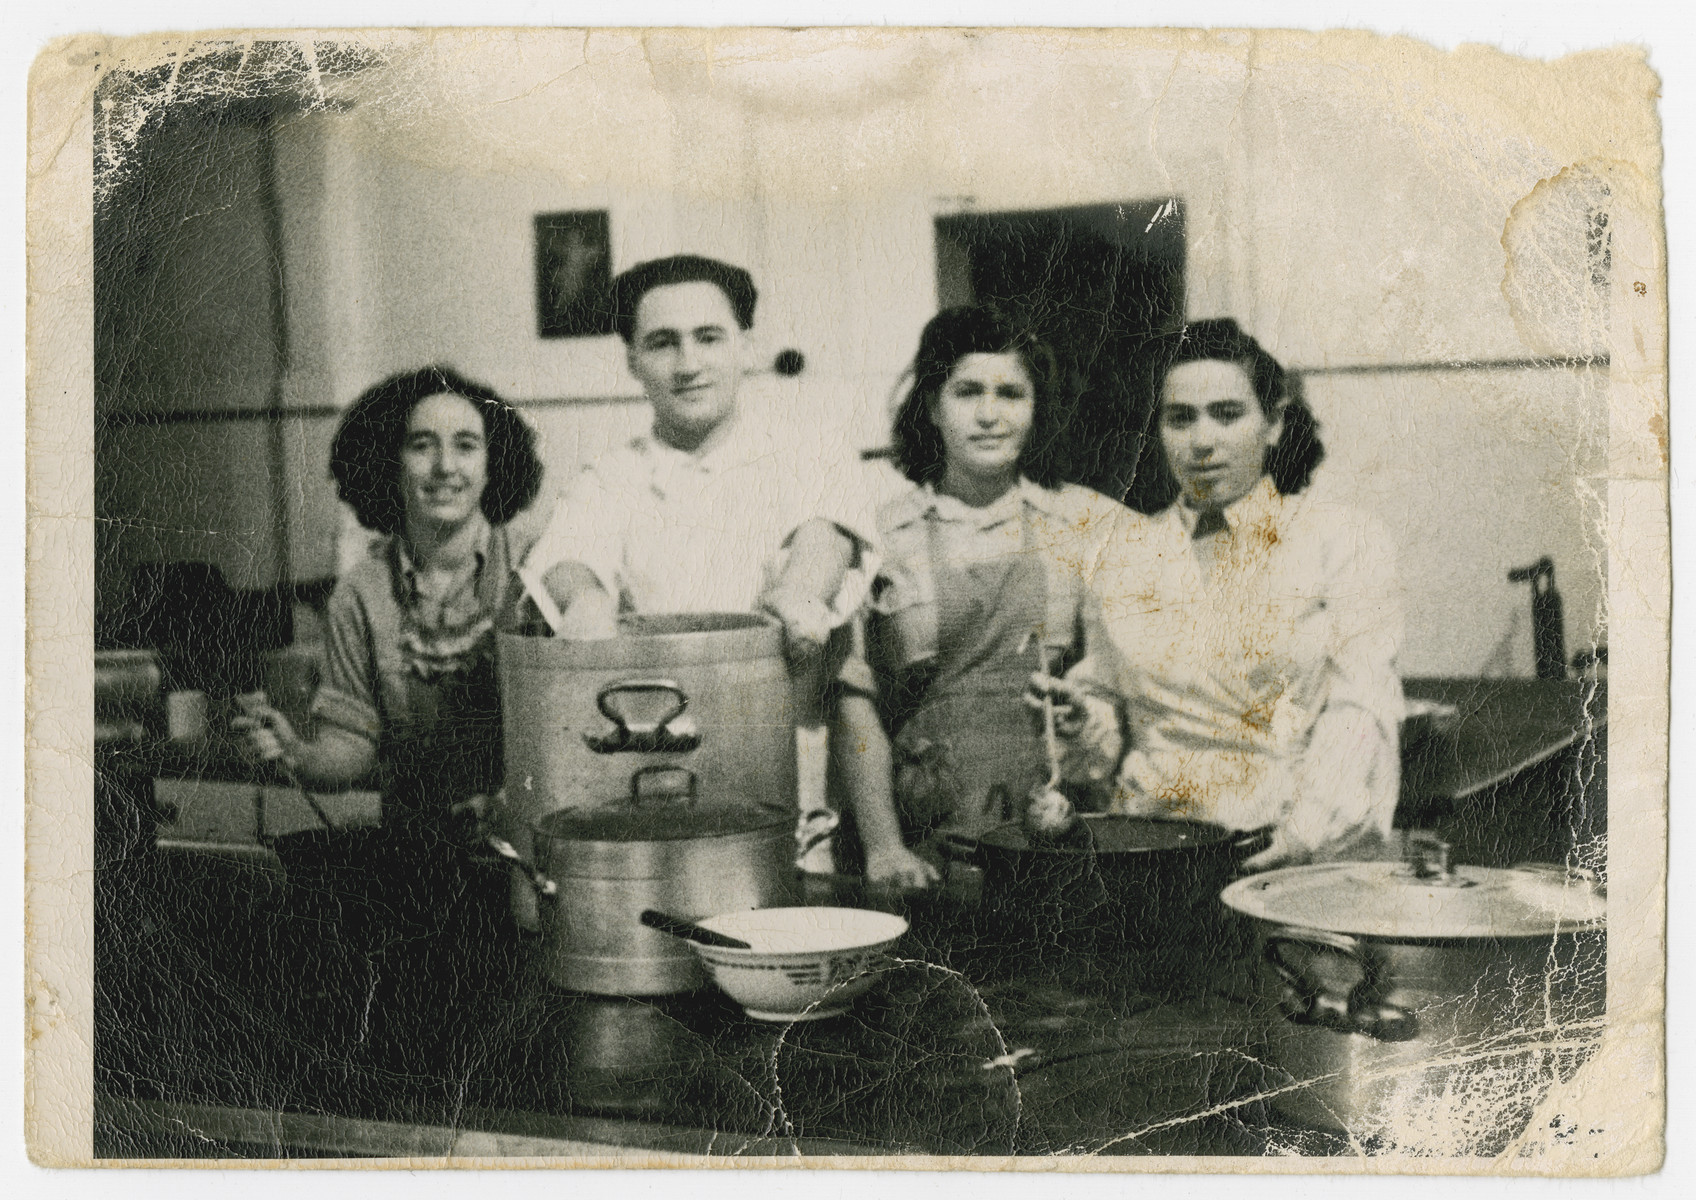 Members of the Holzhausen kibbutz hachshara cook in the camp kitchen.  Rochel is on the left; Rifka Weiss is standing on the right.